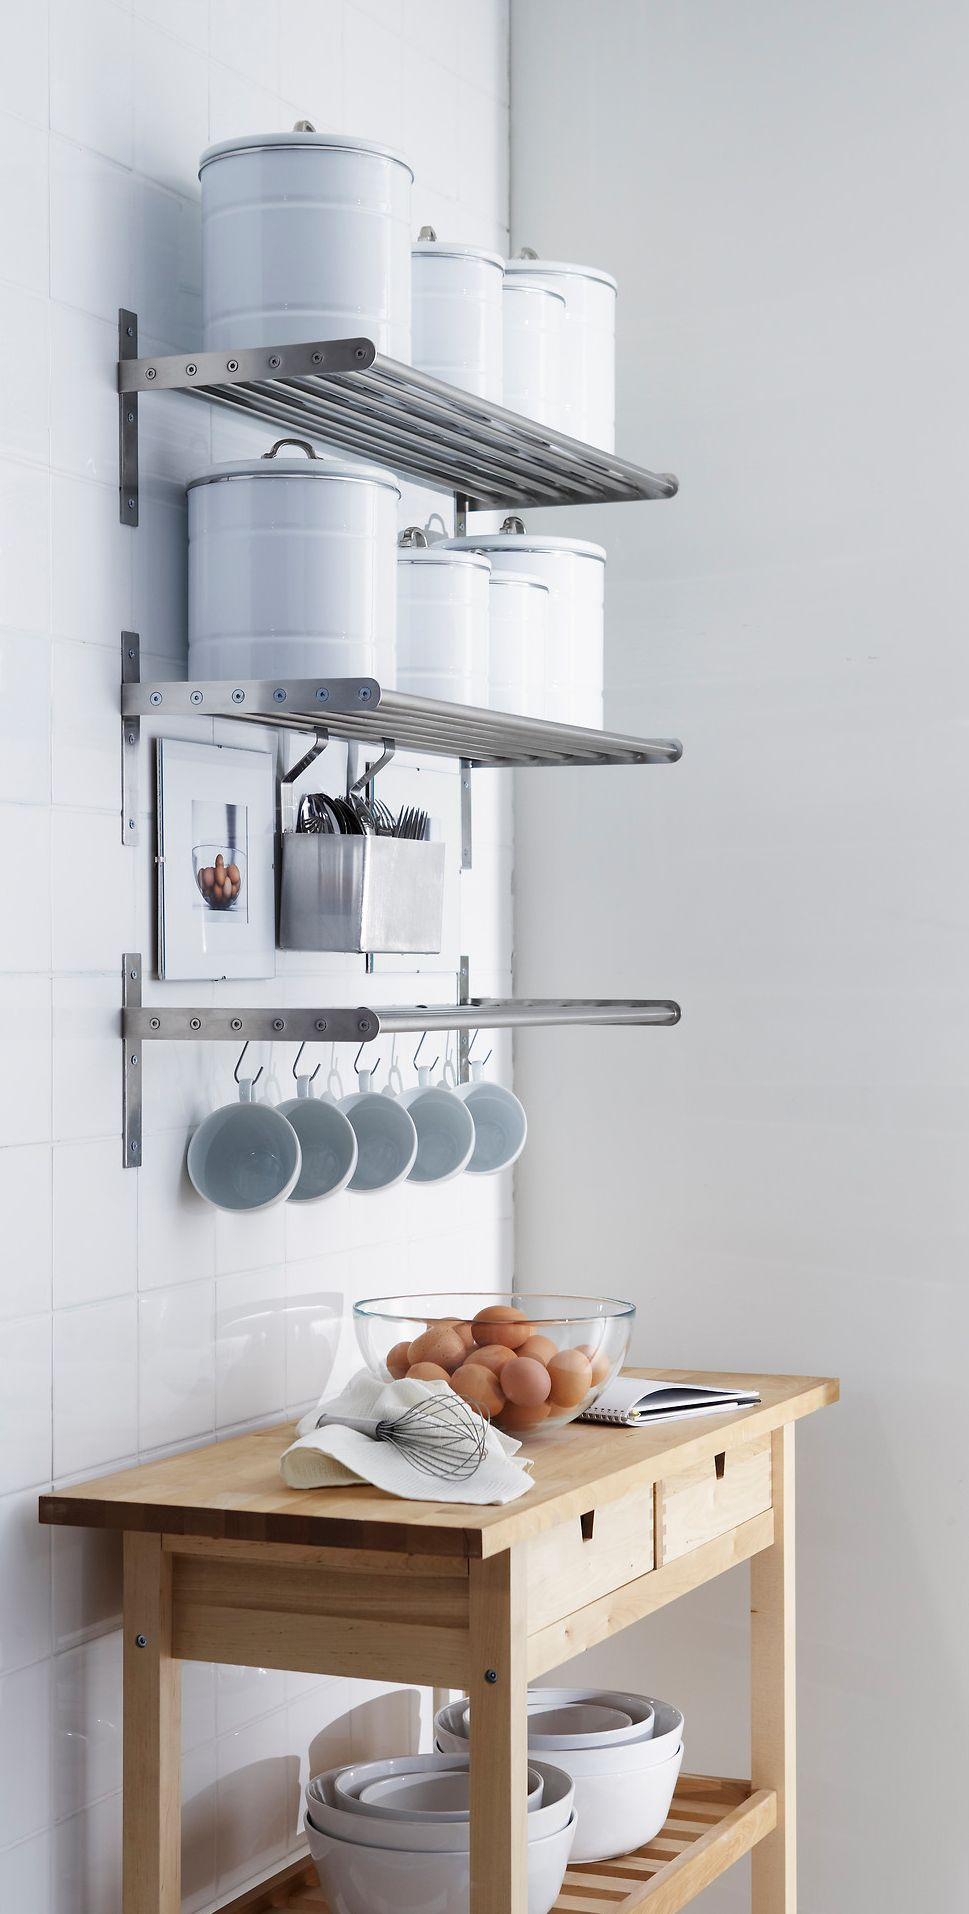 65 Ingenious Kitchen Organization Tips And Storage Ideas Rh Homedit Com